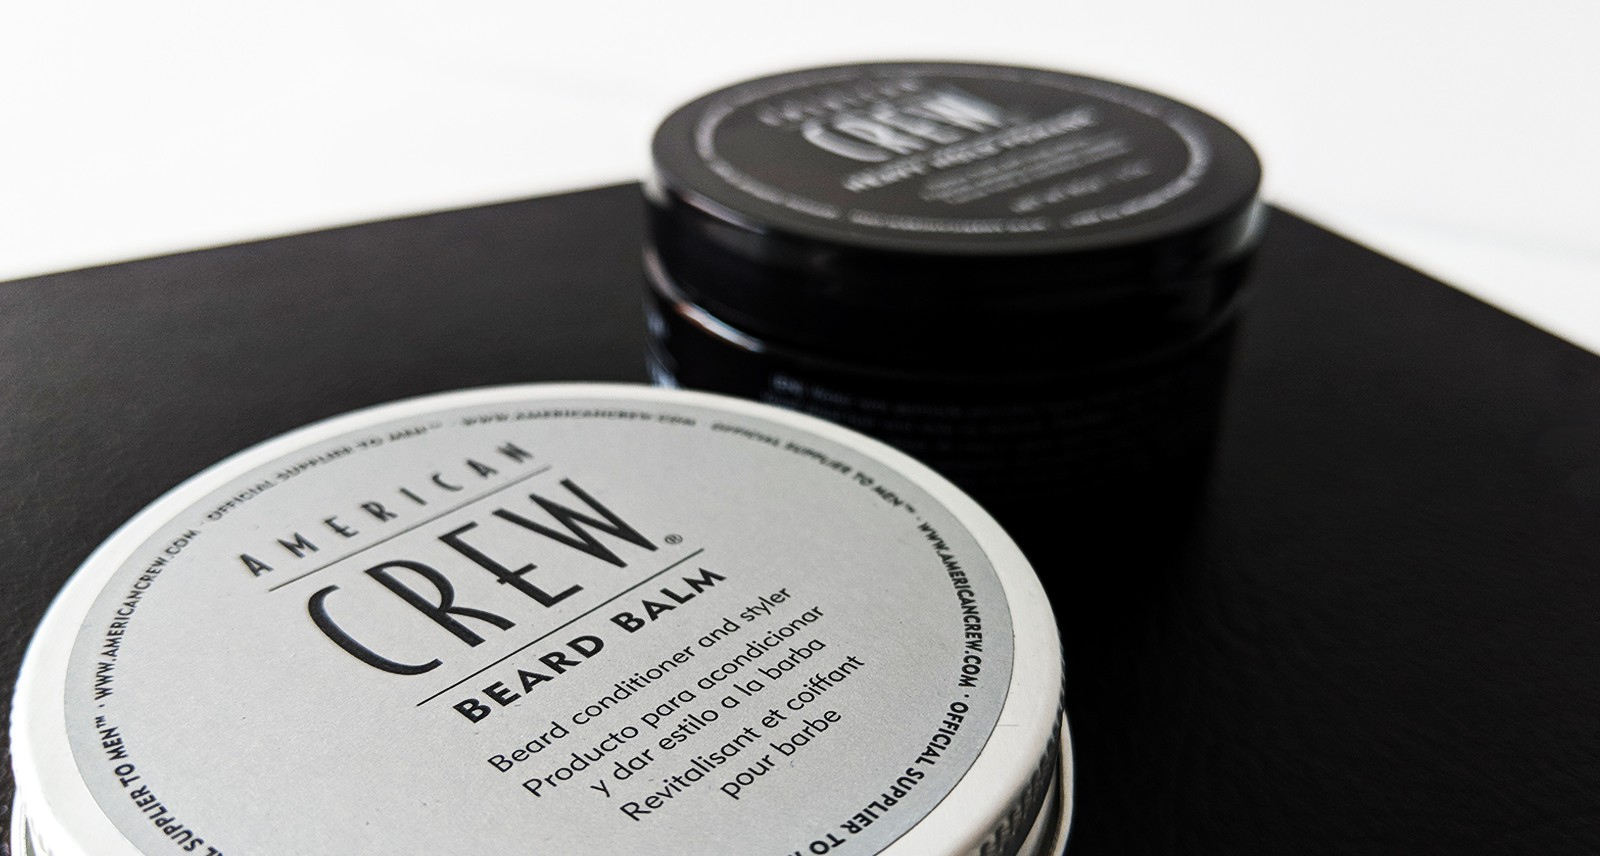 10 Grooming Essentials You Need to Survive the Rest of the Summer